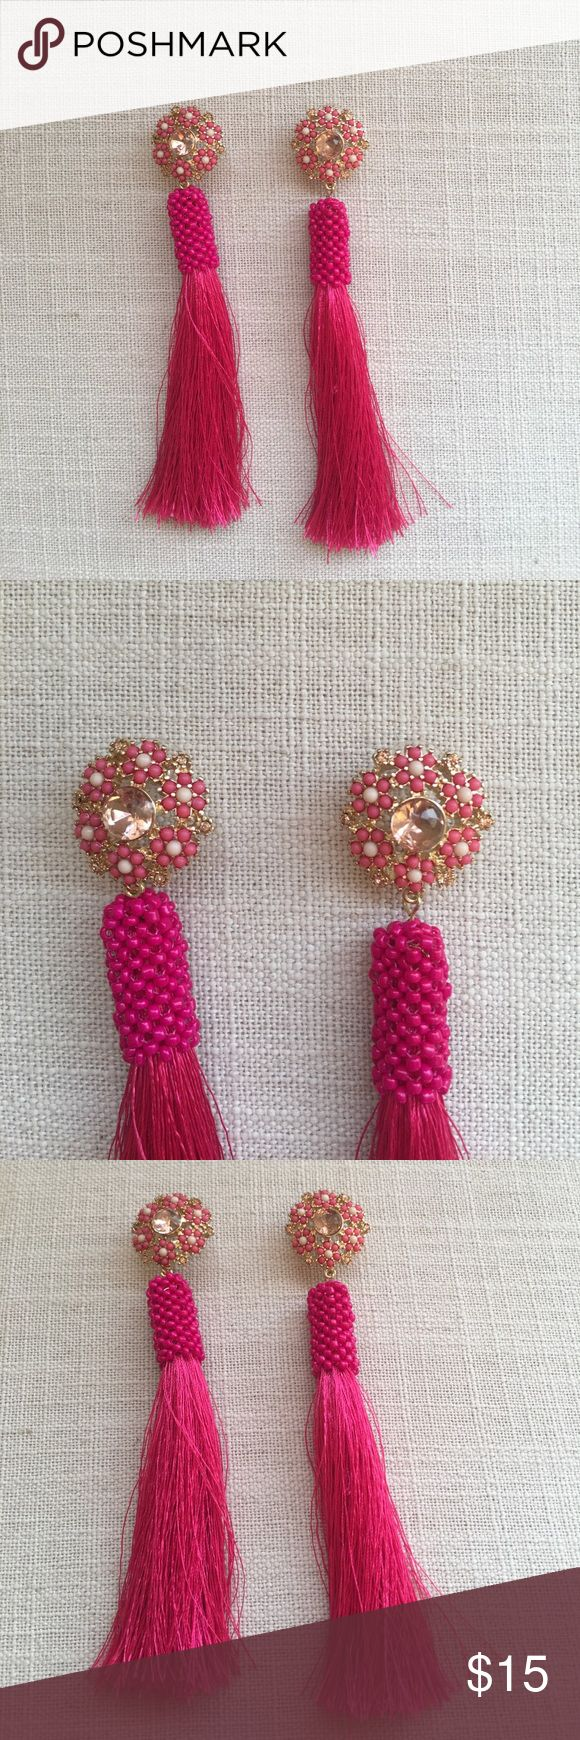 EXPRESS Pink Tassel Earrings Pink tassel earrings - new never worn - statement earrings that make a pop with a simple little black dress! Bought for vacation and never wore them. Express Jewelry Earrings